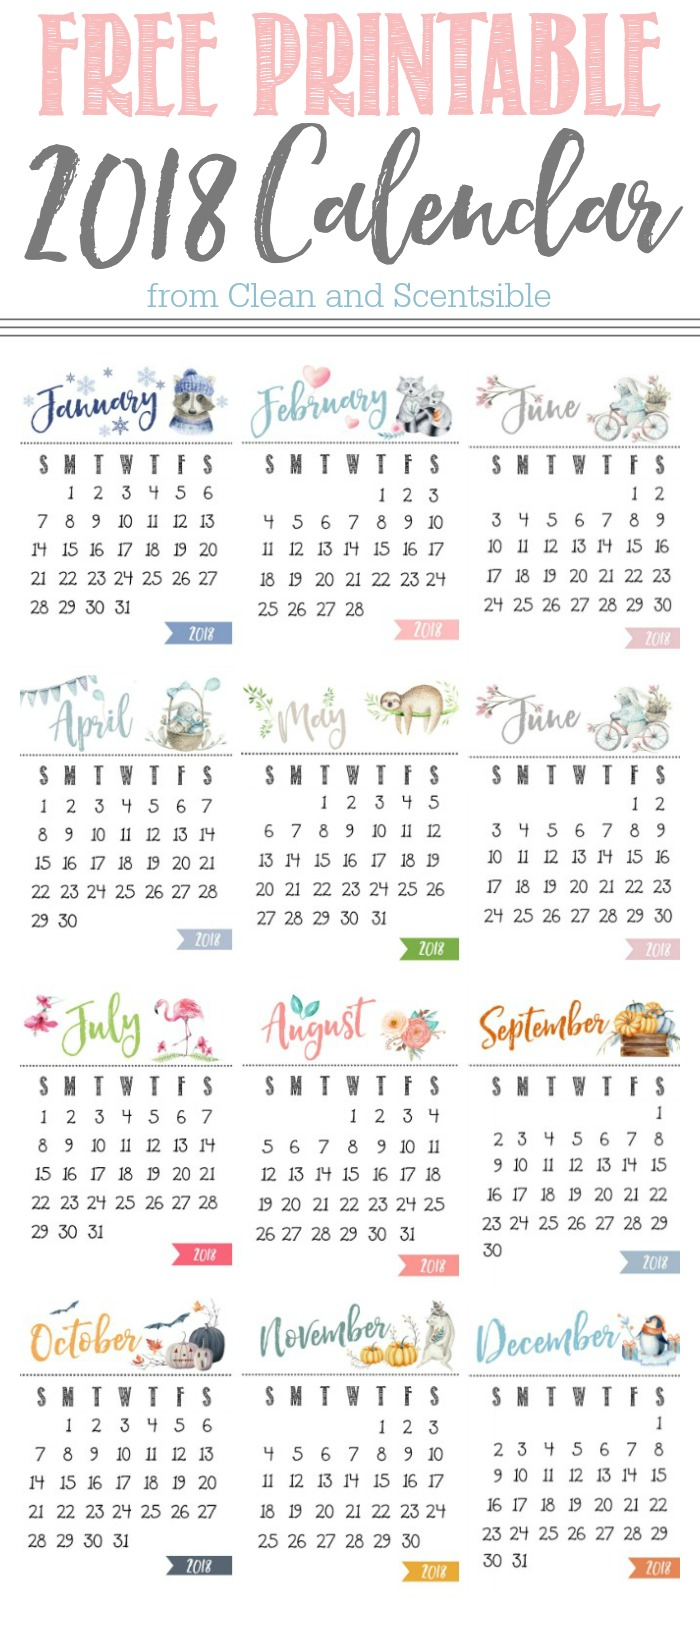 Delightful Cute Free Printable 2018 Calendar. Display On A Wood Stand, Clipboard,  Photo Frame